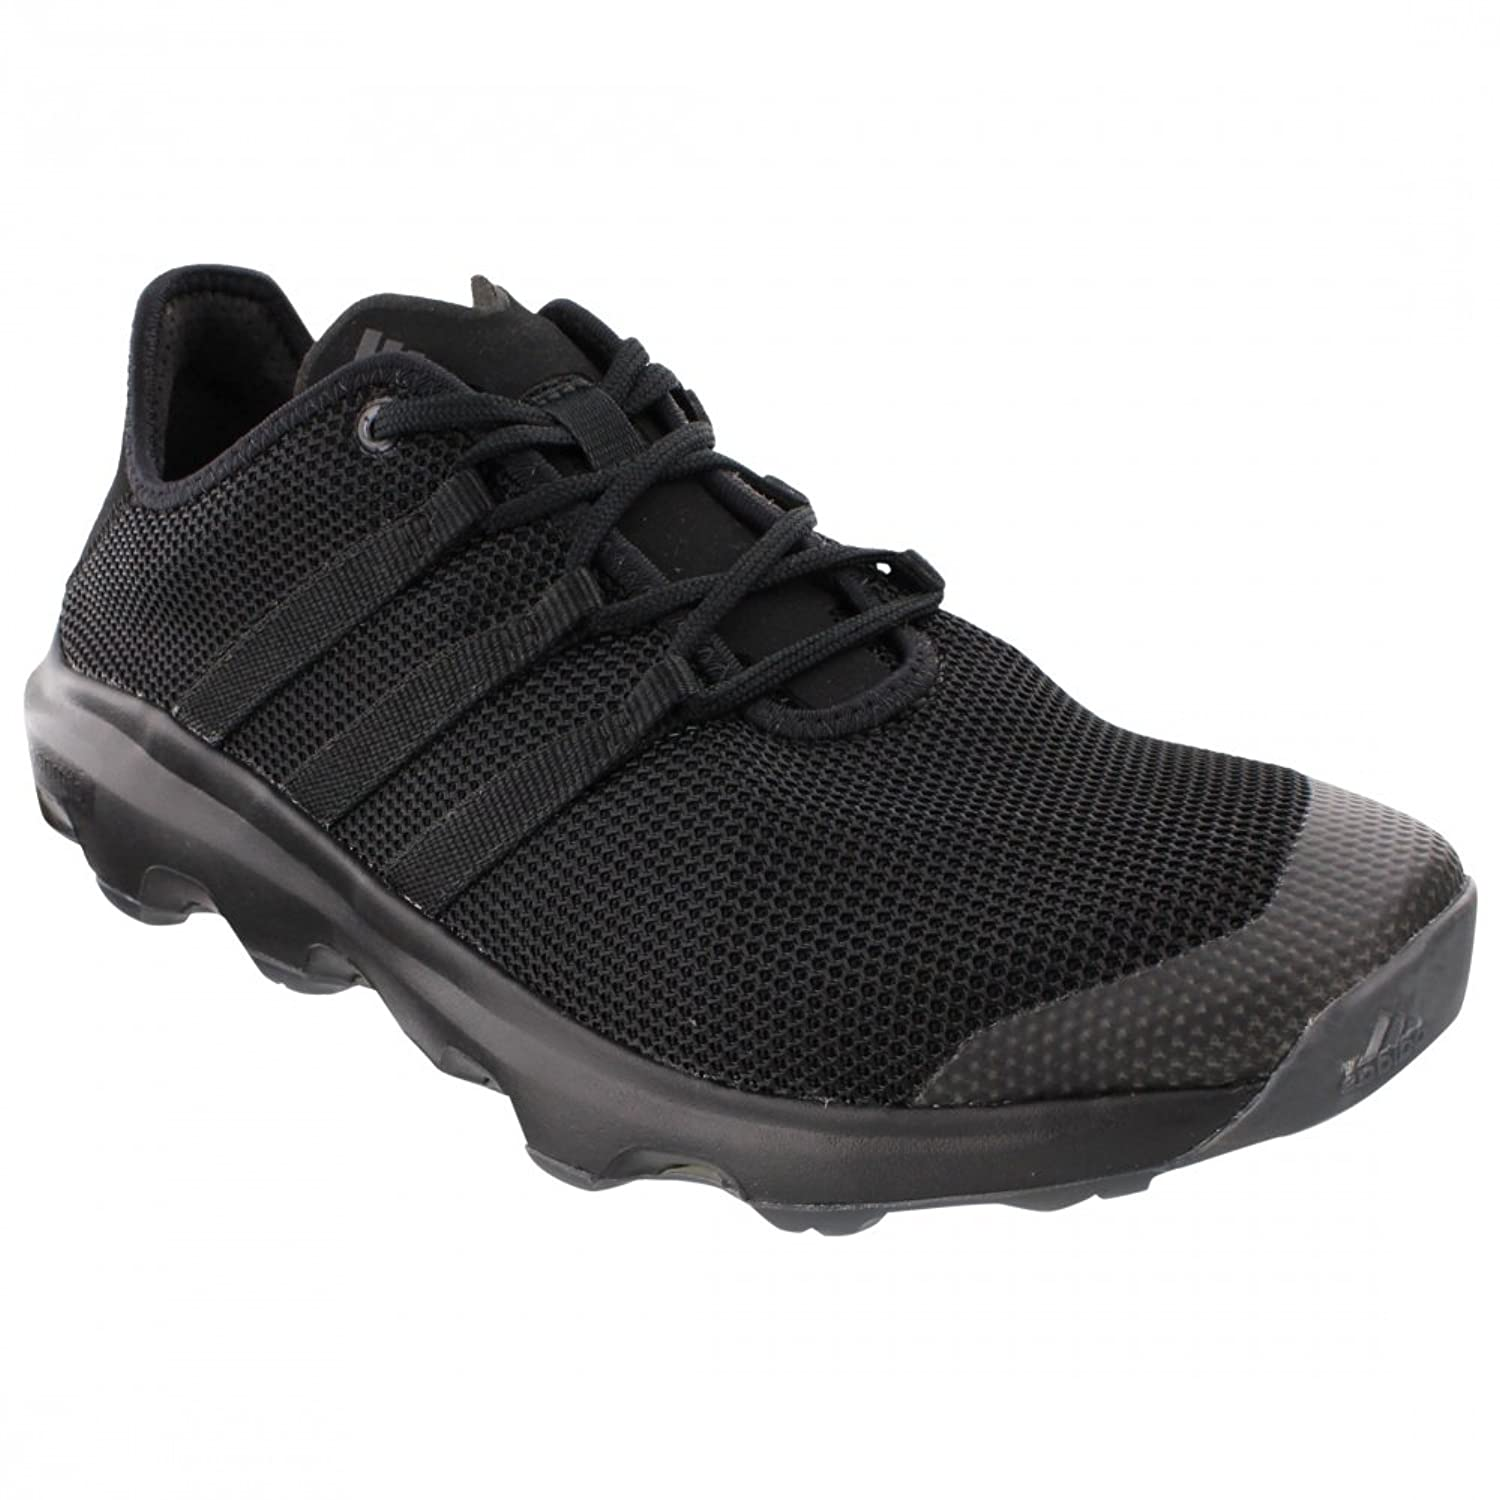 Adidas Climacool Voyager Shoe - Men's